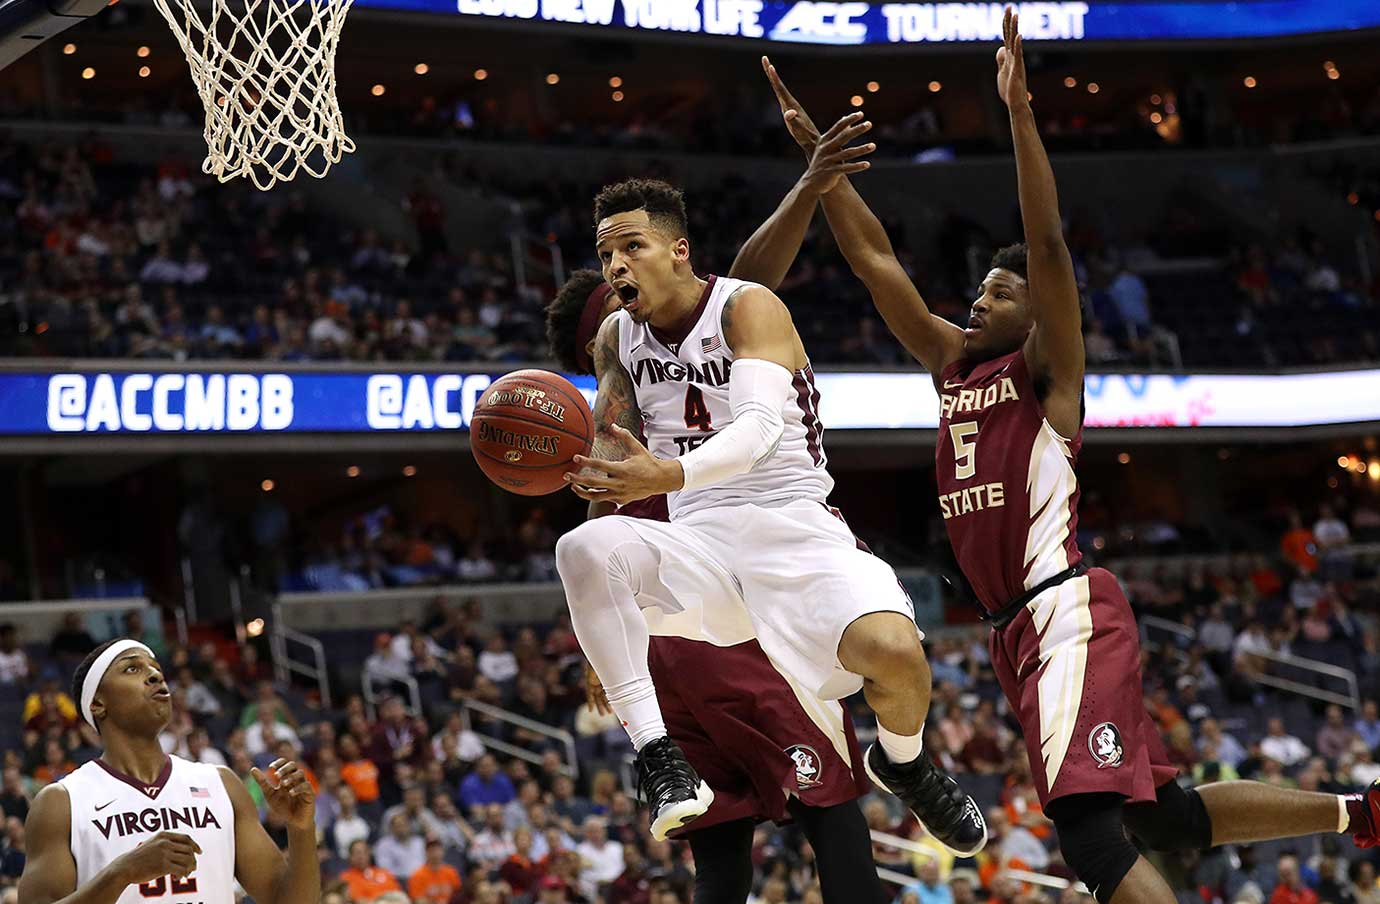 Seth Allen of the Virginia Tech Hokies shoots in front of Malik Beasley of Florida State.